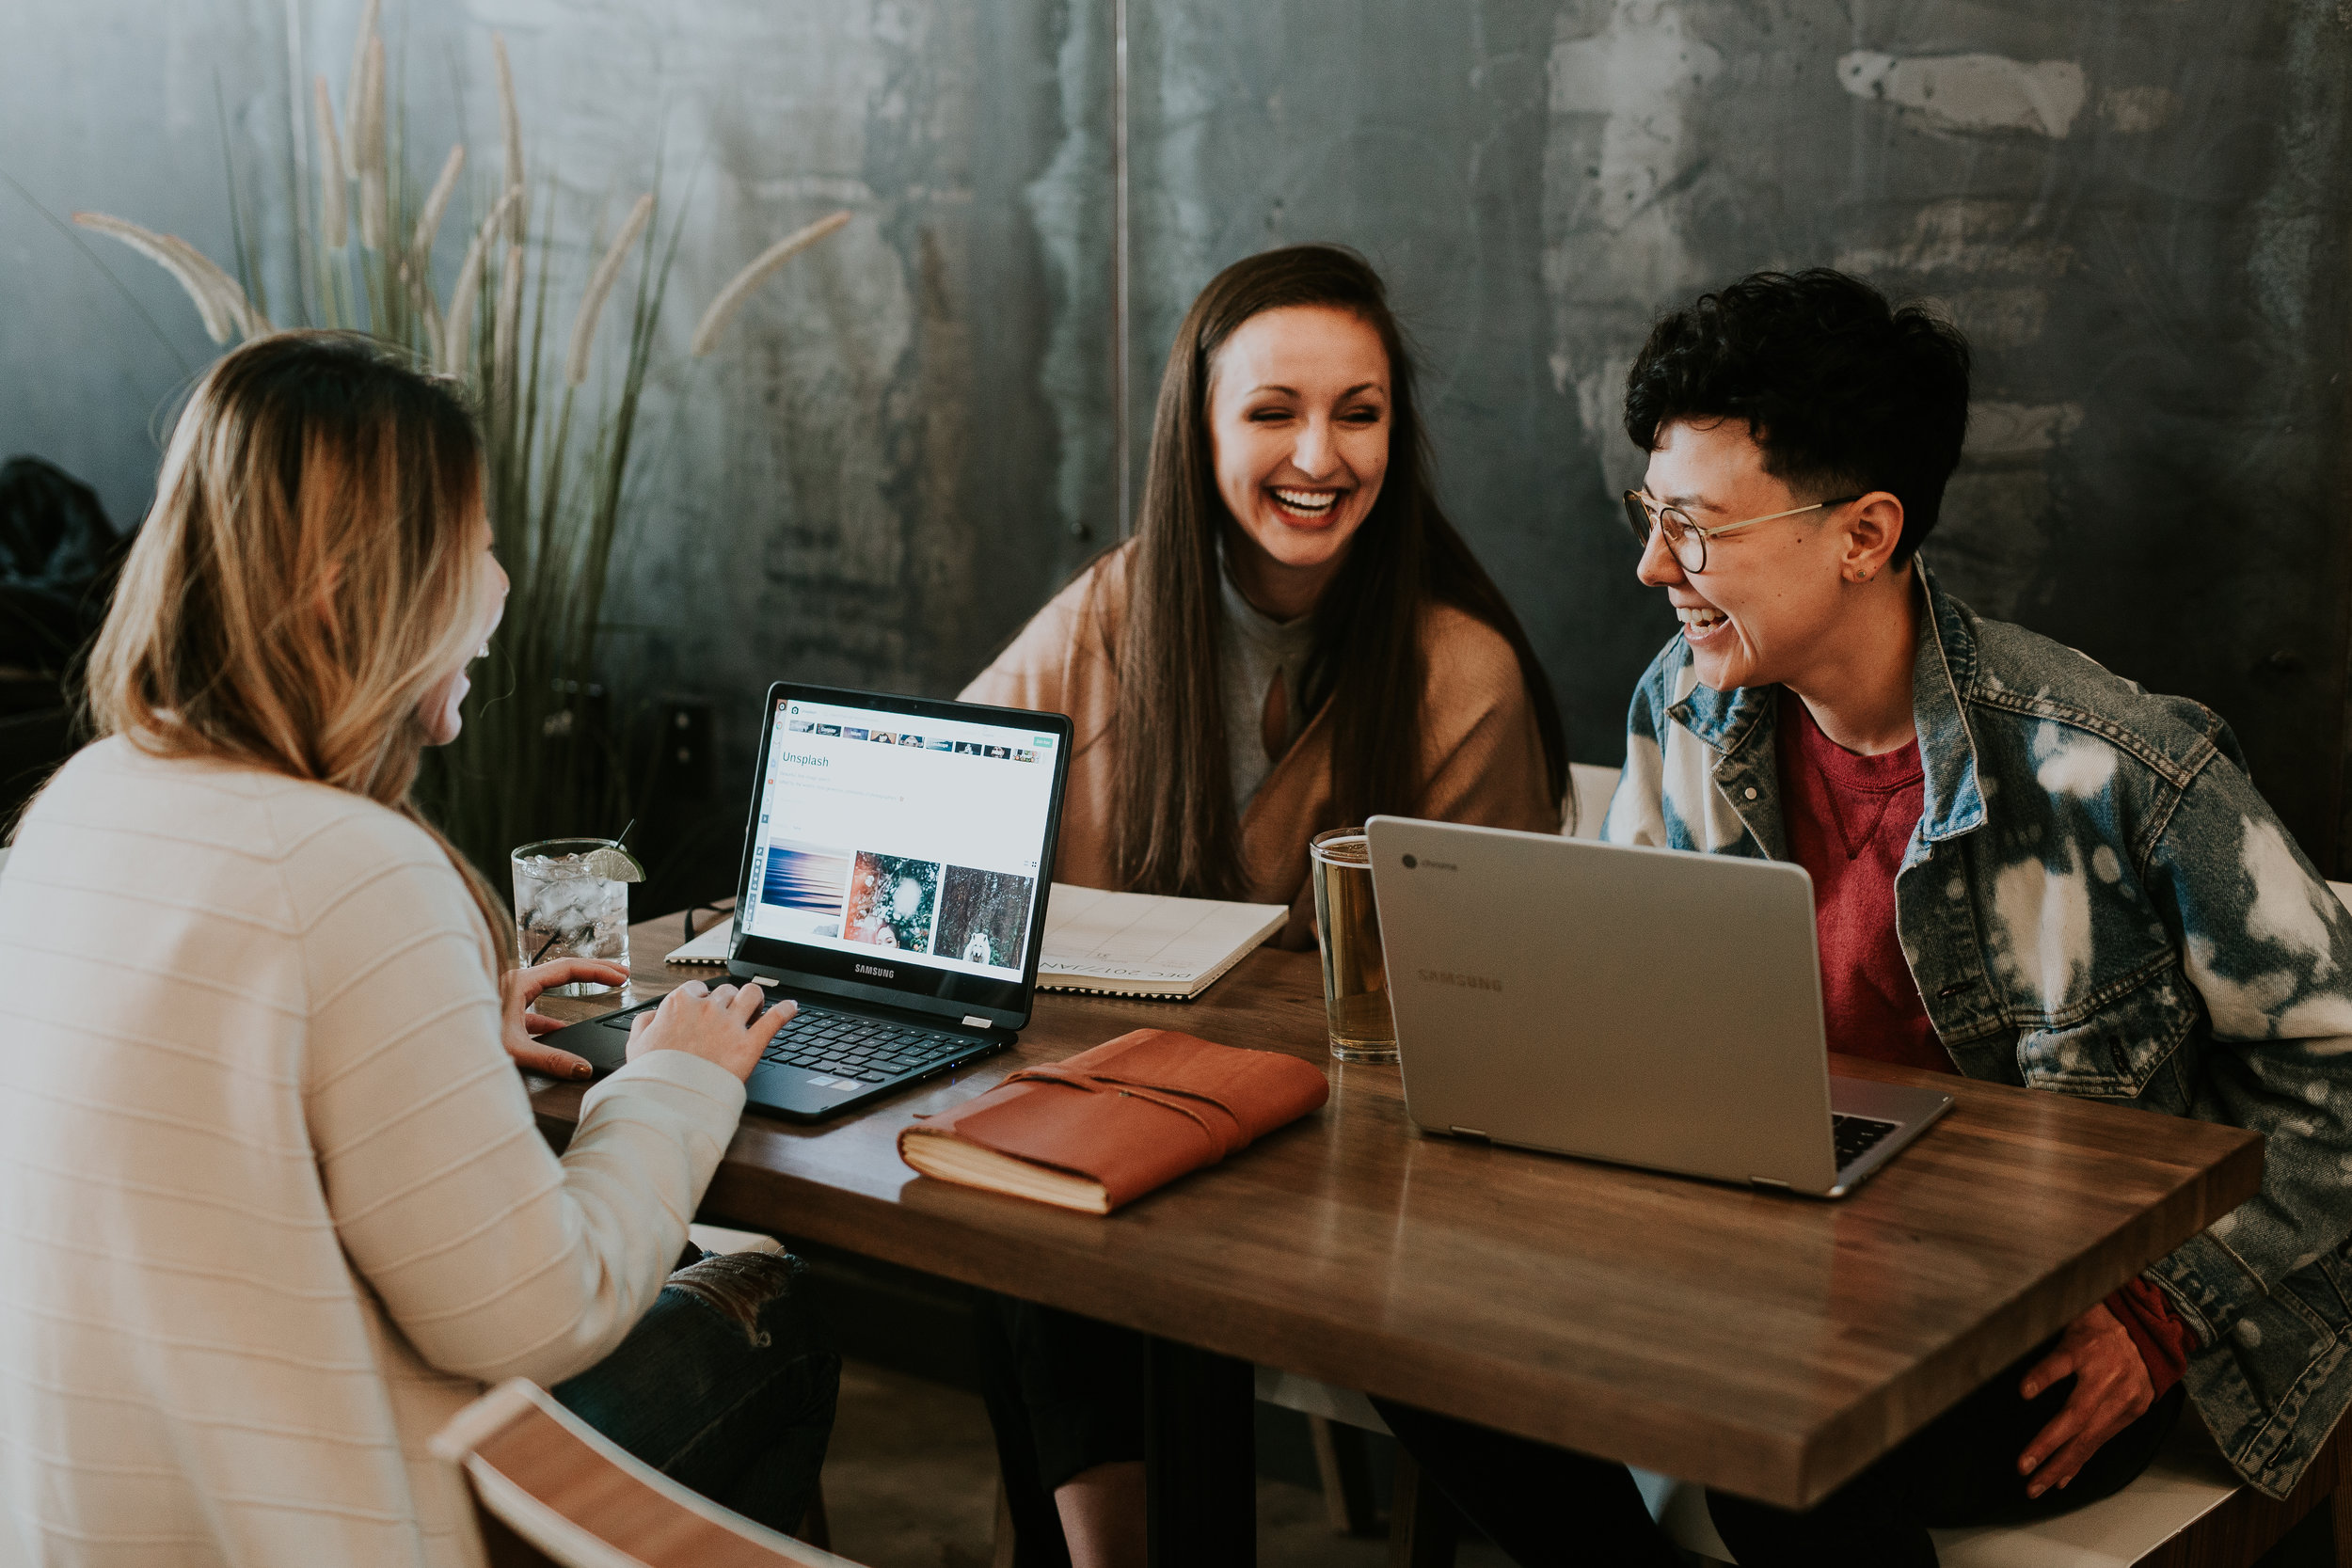 How to win at work: Tips on surviving the 21st century workplace